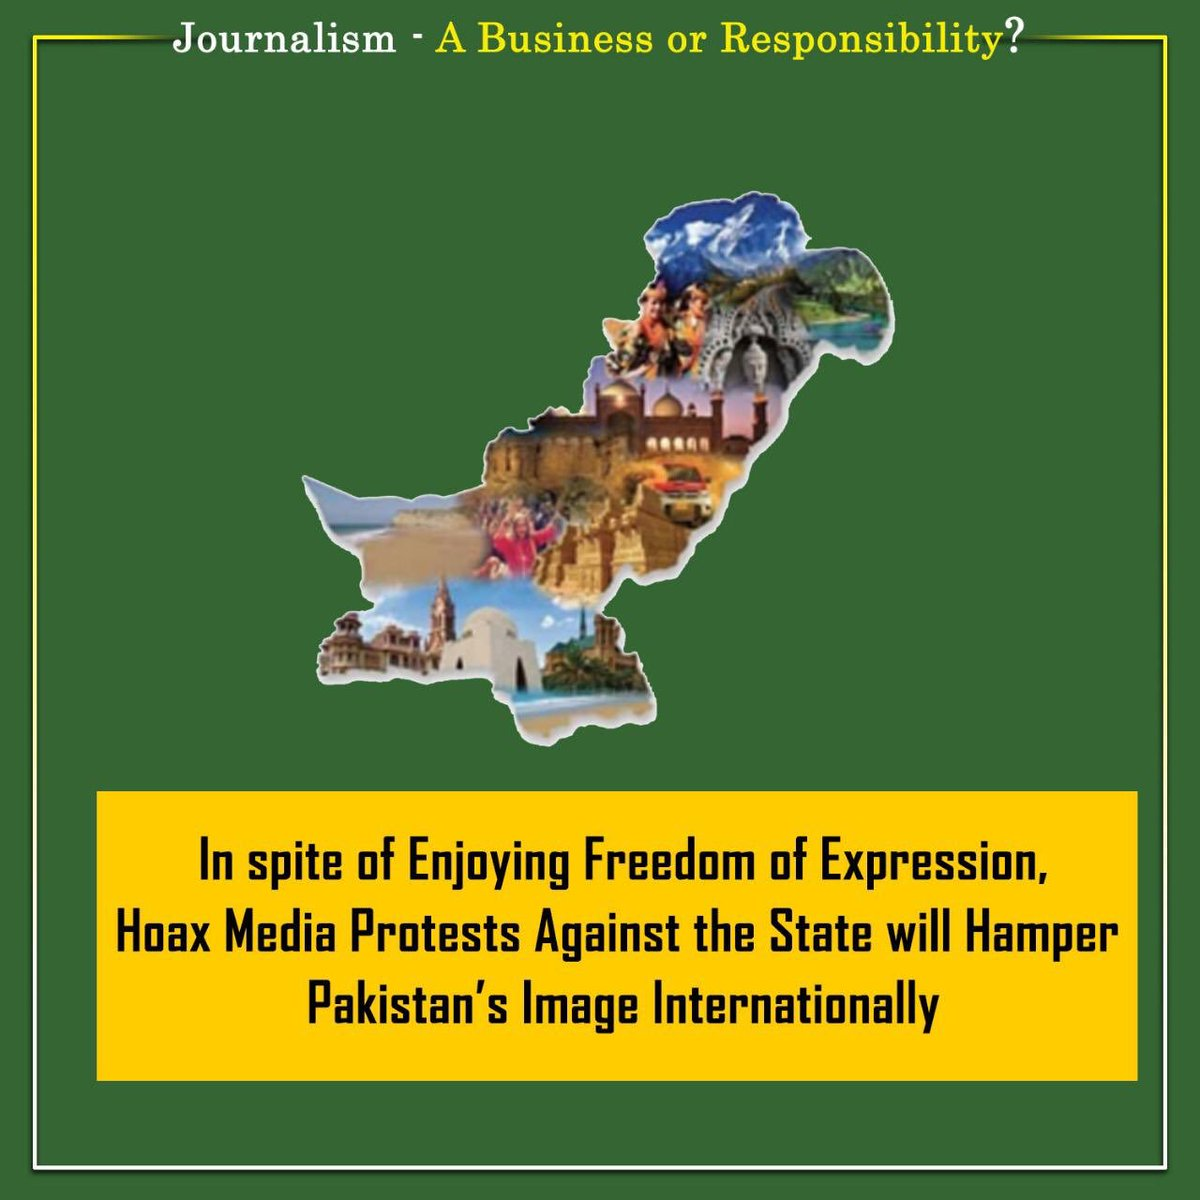 Media is often considered a pillar of state. It is sad to see certain media factions & seasoned journalists who also scrutinize Prime Minister Khan's personal life in the name of freedom of media later accuse the State for curtailing media freedom.   #JournalismNotAgenda